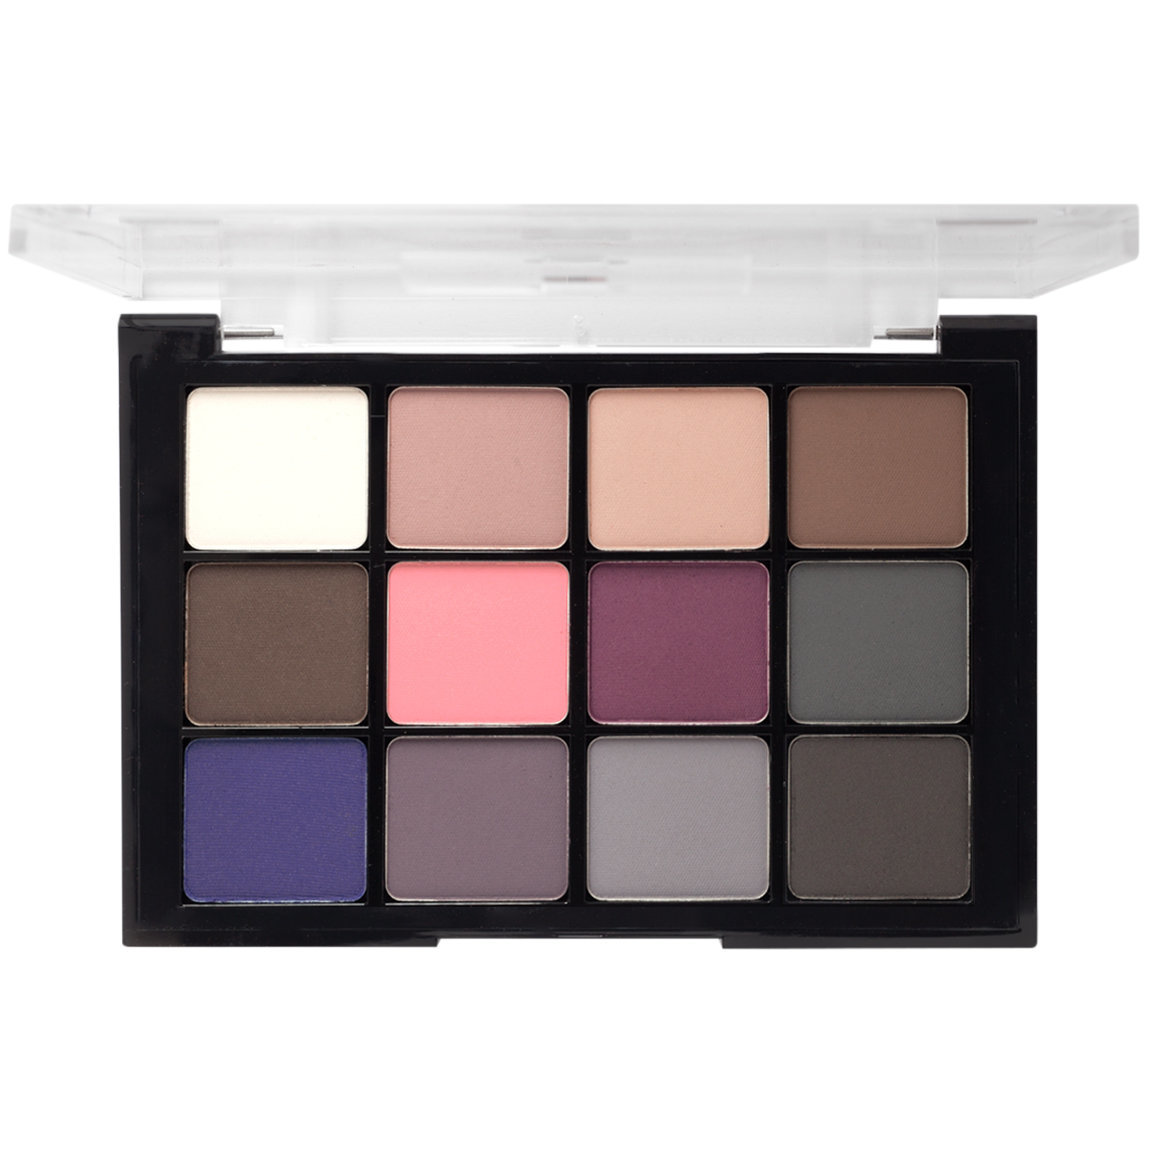 Viseart Eye Shadow Palette 7 Cool Mattes product smear.